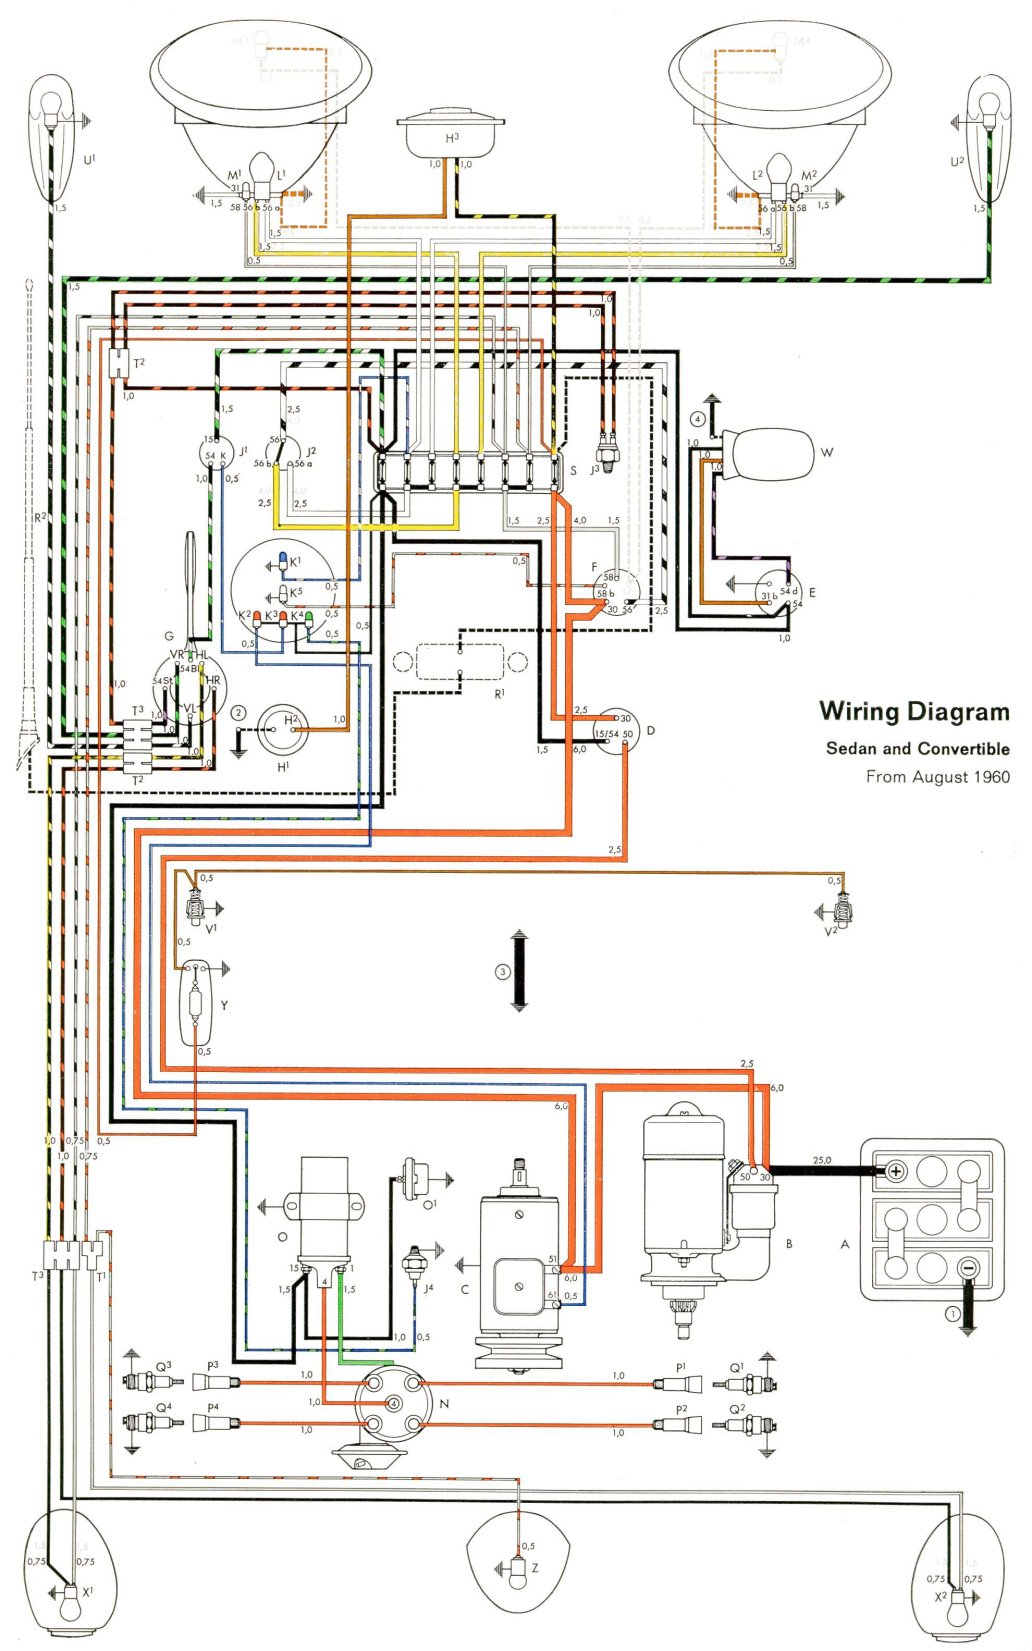 bug_61 1961 beetle wiring diagram thegoldenbug com volkswagen 2002 beetle wiring diagram at gsmx.co